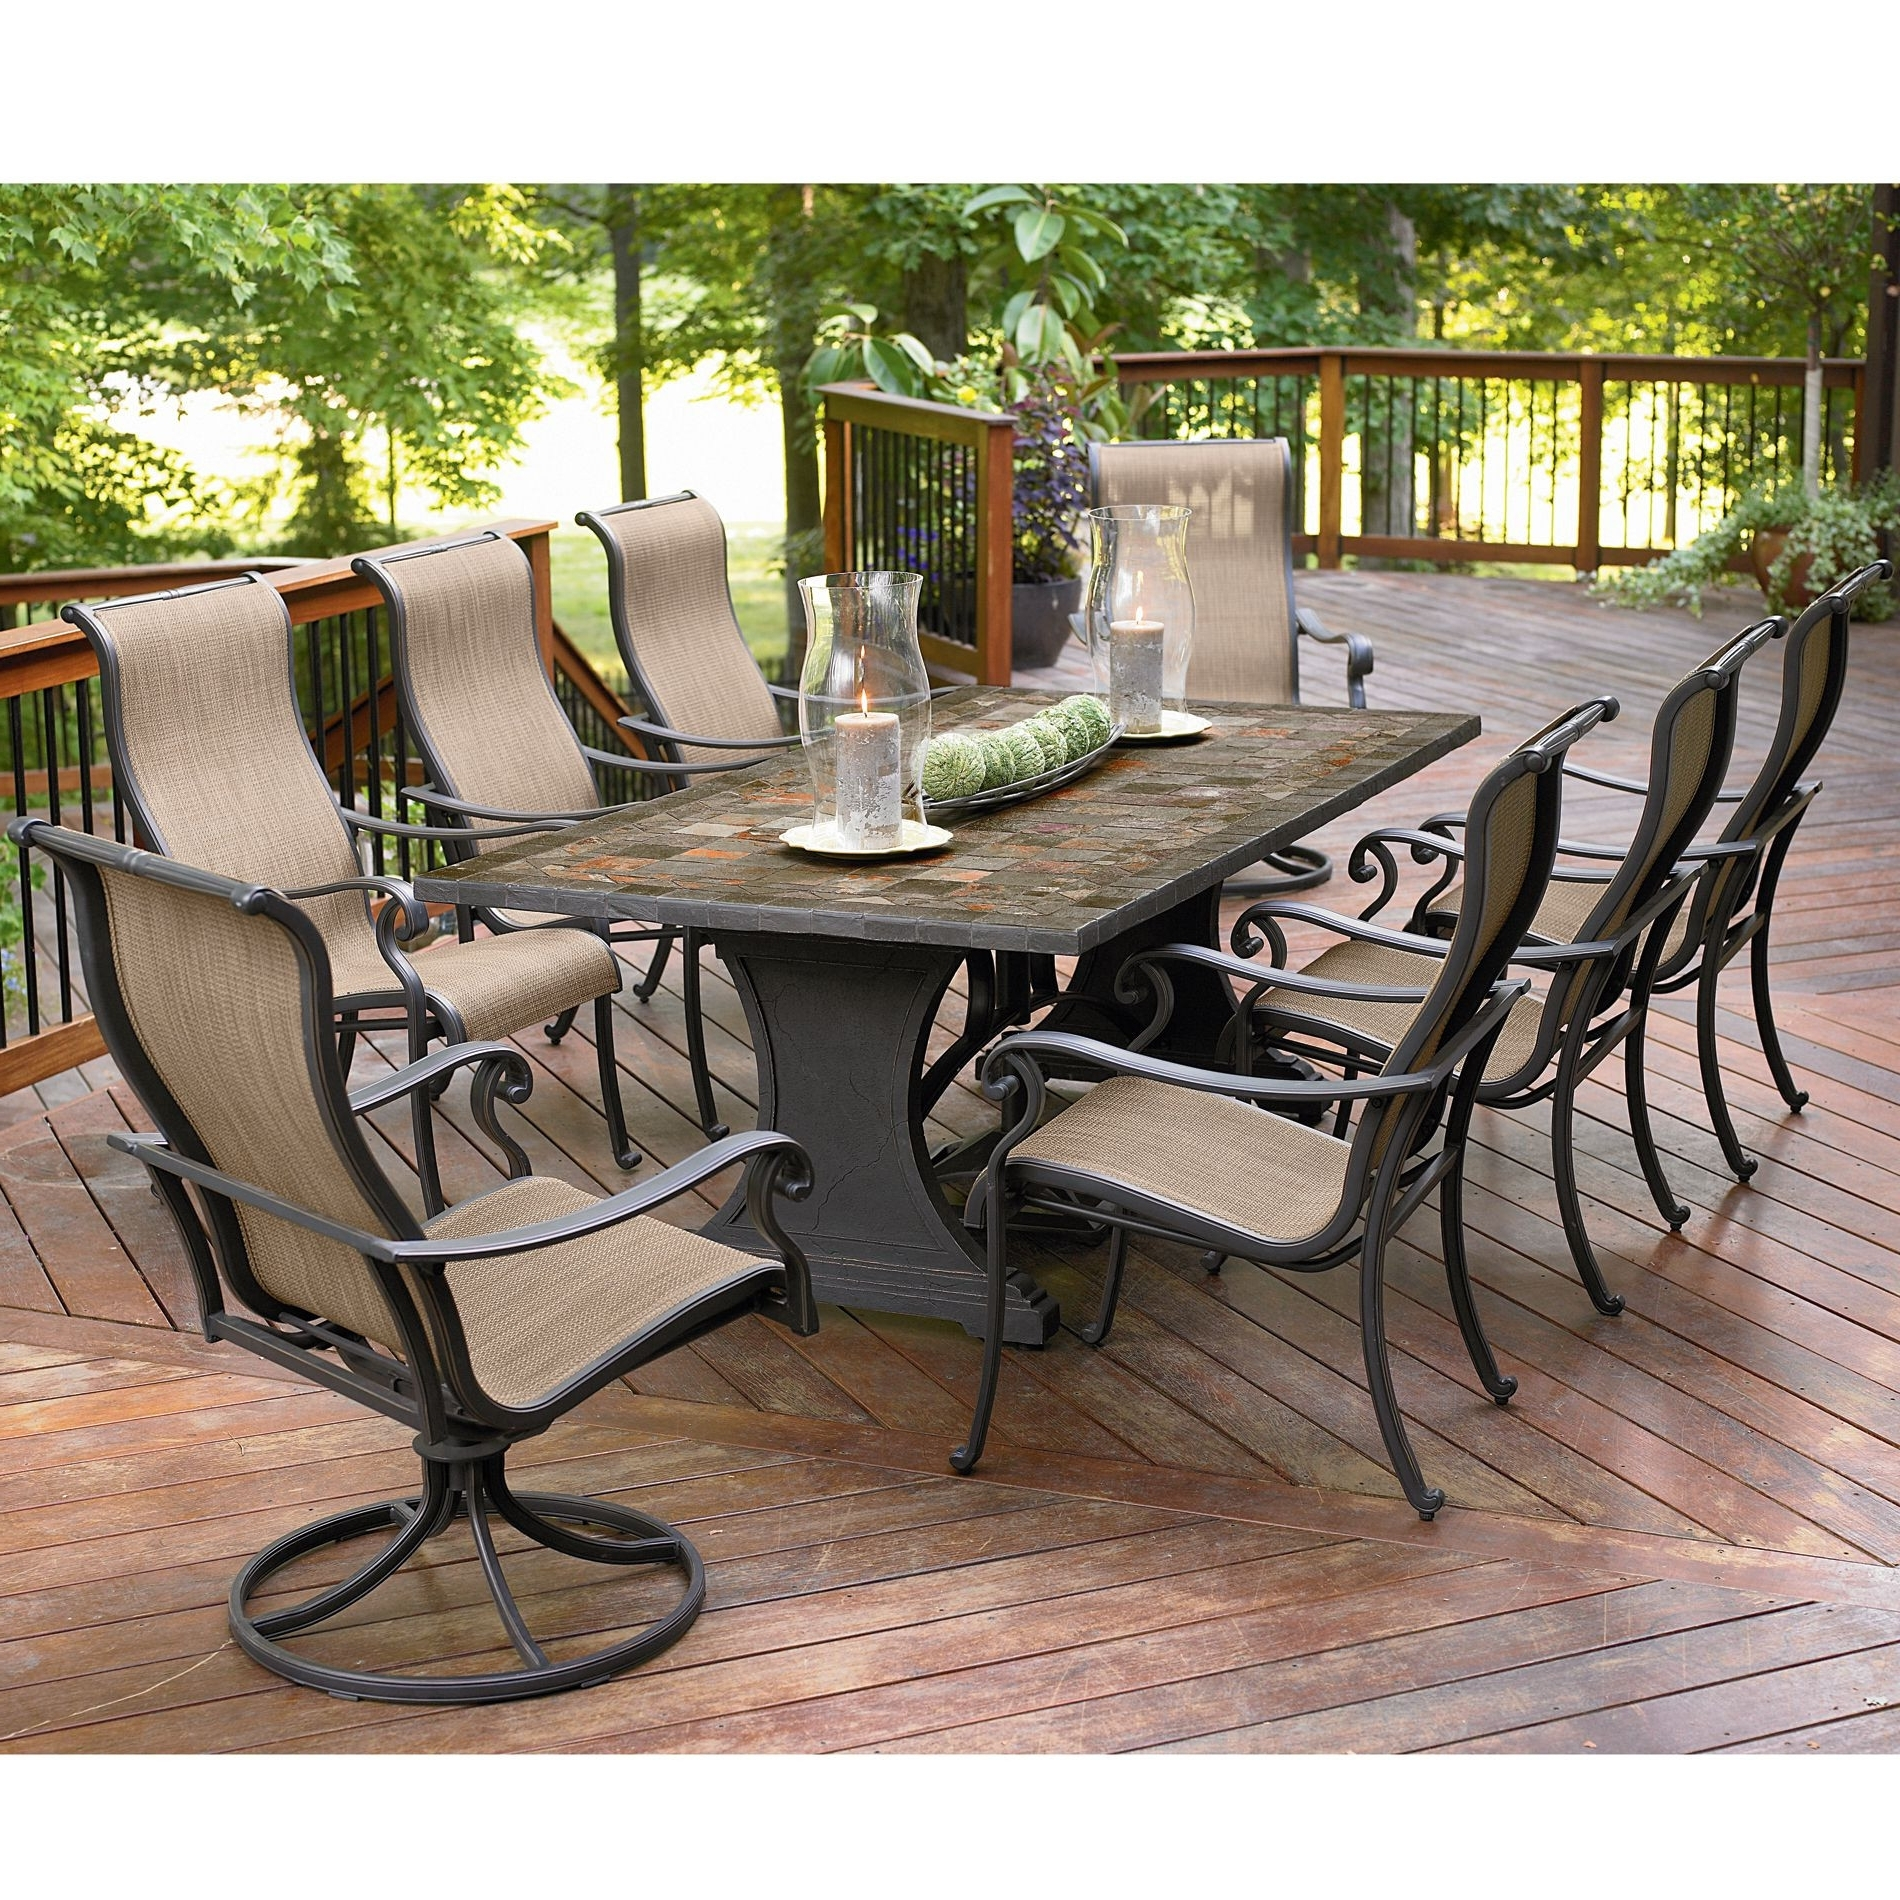 Well Known Sears Patio Furniture Conversation Sets Pertaining To 30 Fresh Outdoor Sectional Dining Set Concept – Bakken Design Build (View 13 of 15)